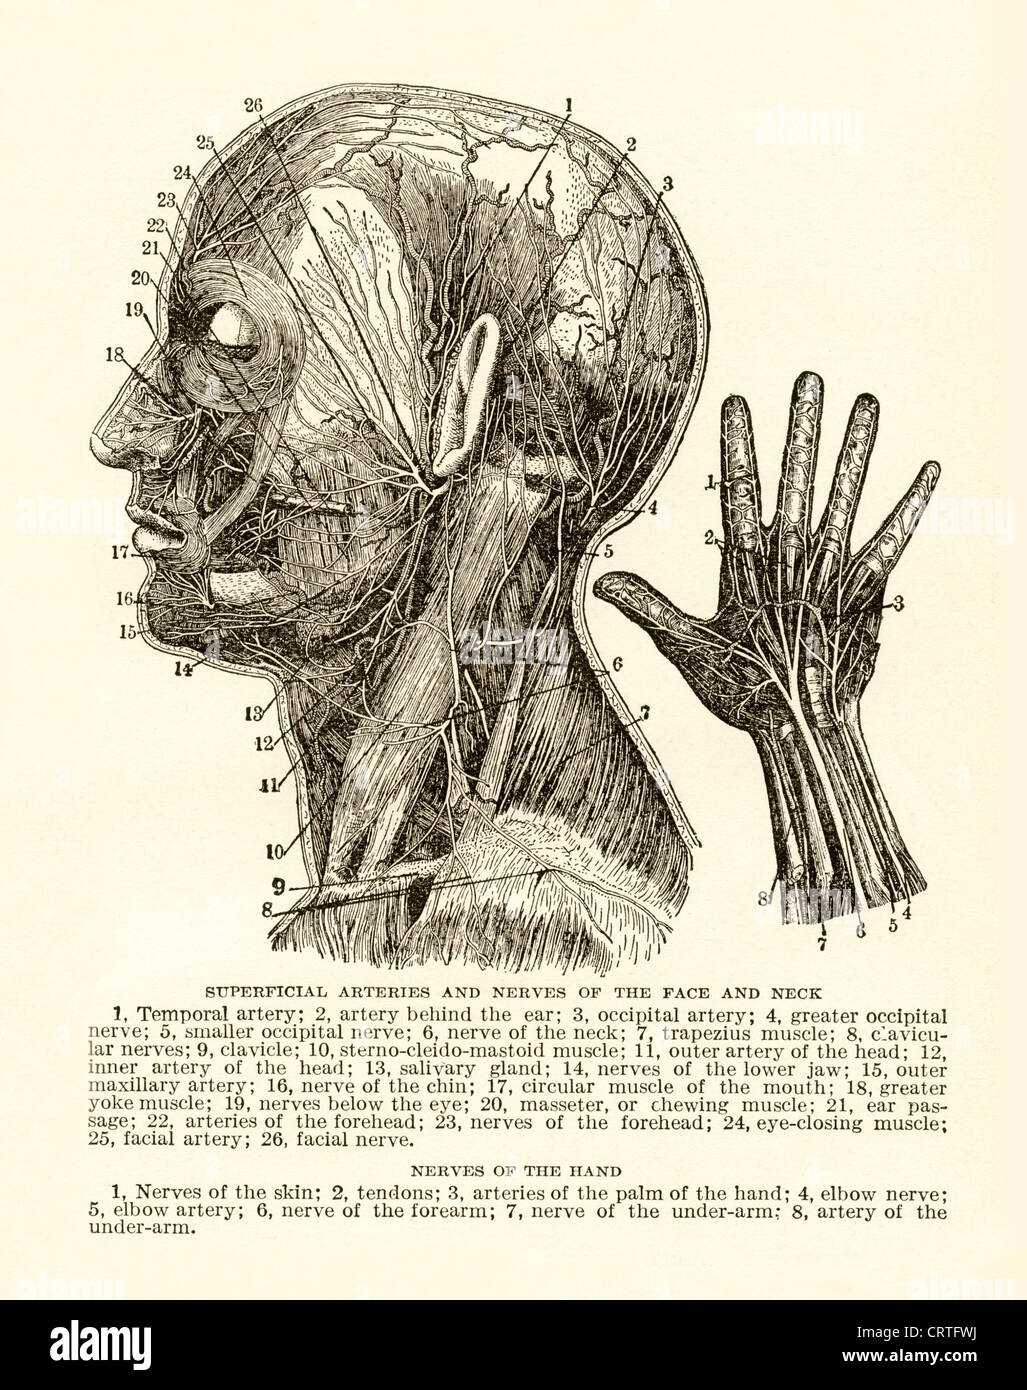 Vintage engraving of arteries and nerves of human head and hand. - Stock Image